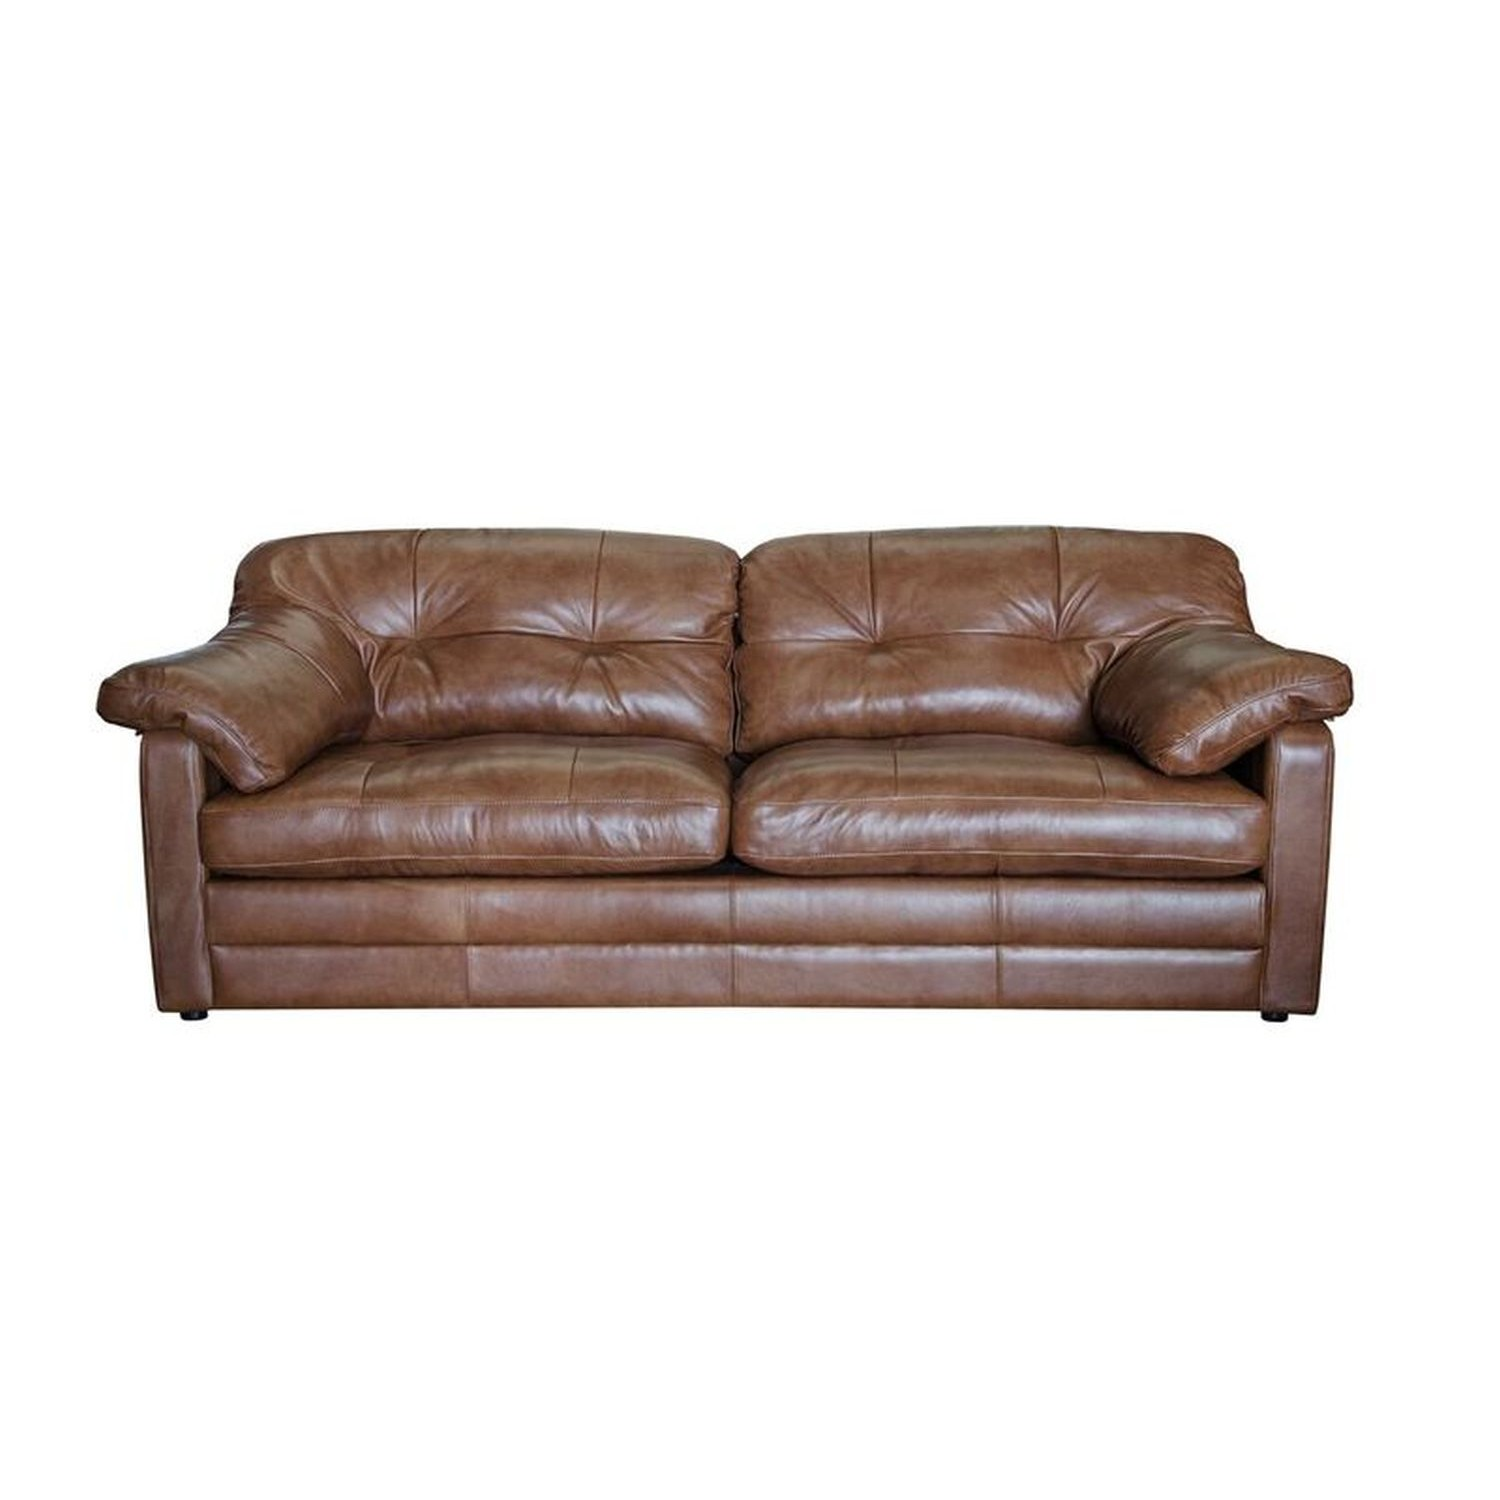 Alexander James Bailey 3 Seater Sofa 3 Seat Tumbleweed